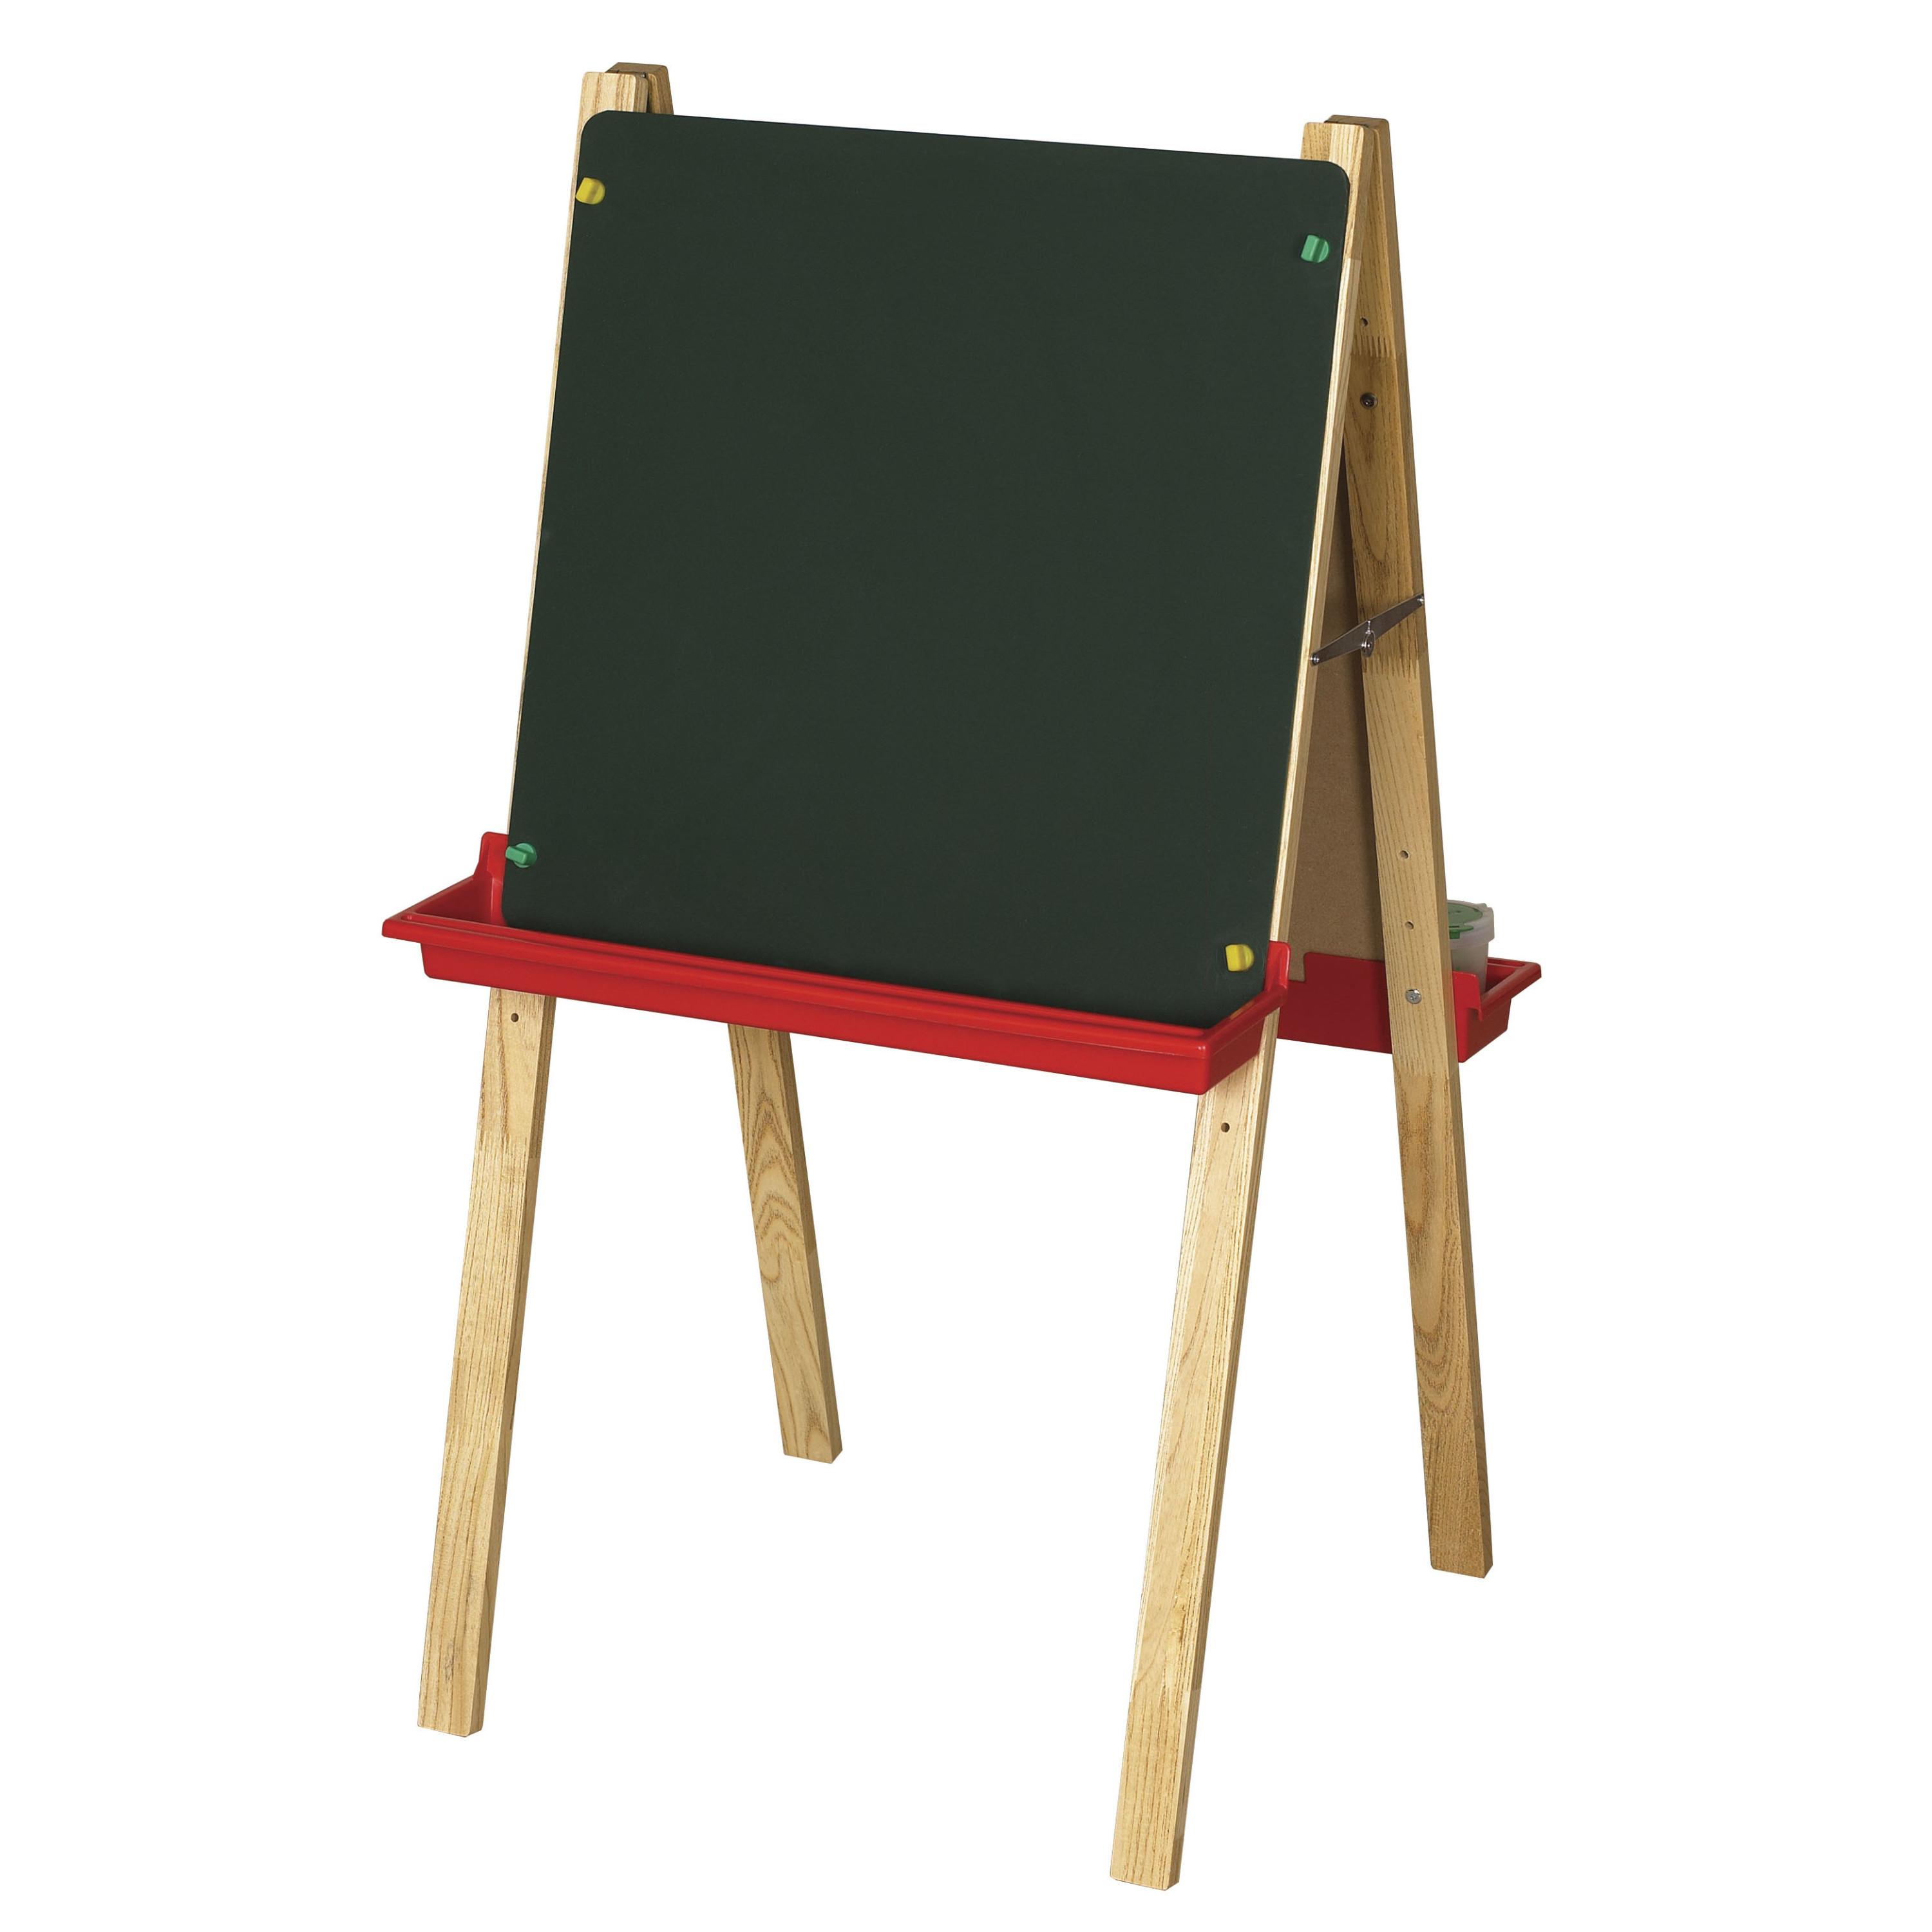 Double-Sided Adjustable Easel Chalkboard and Dry-Erase by ECR4Kids